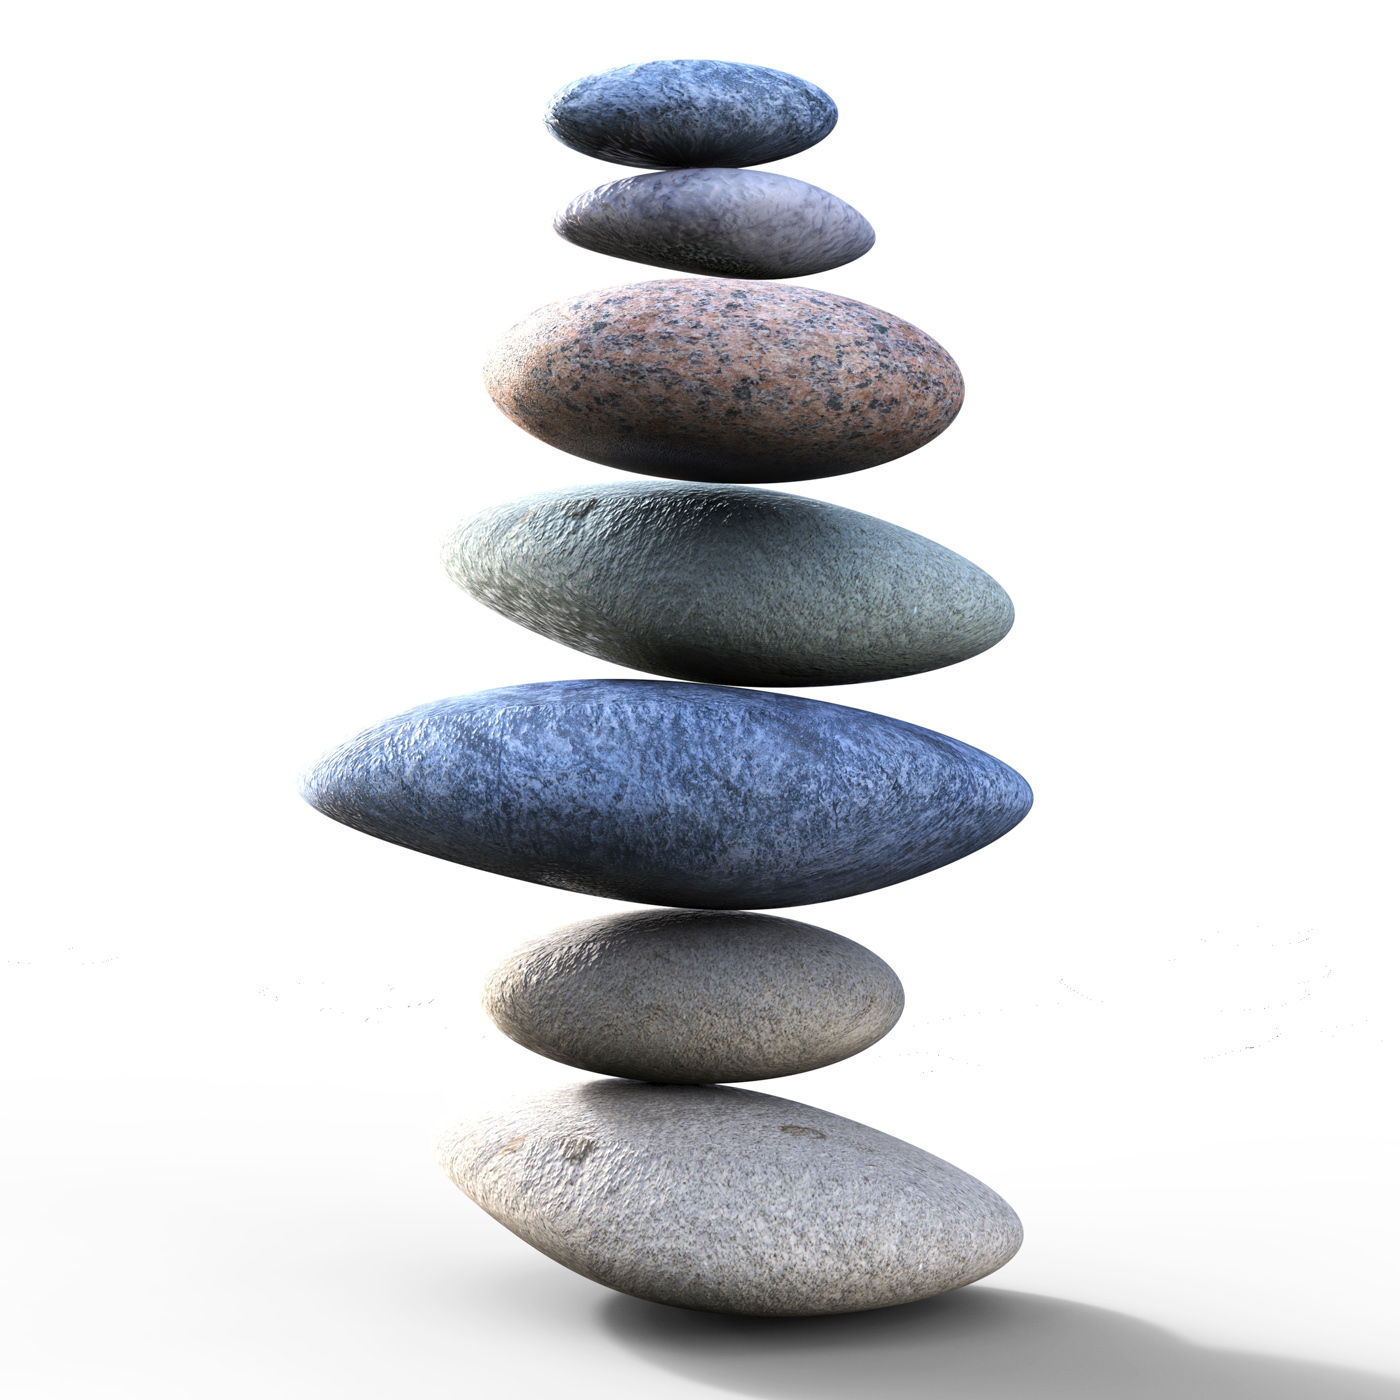 Spa Stones Represents Perfect Balance And Balanced, Balance, Pebble, Wellness, Wellbeing, HQ Photo